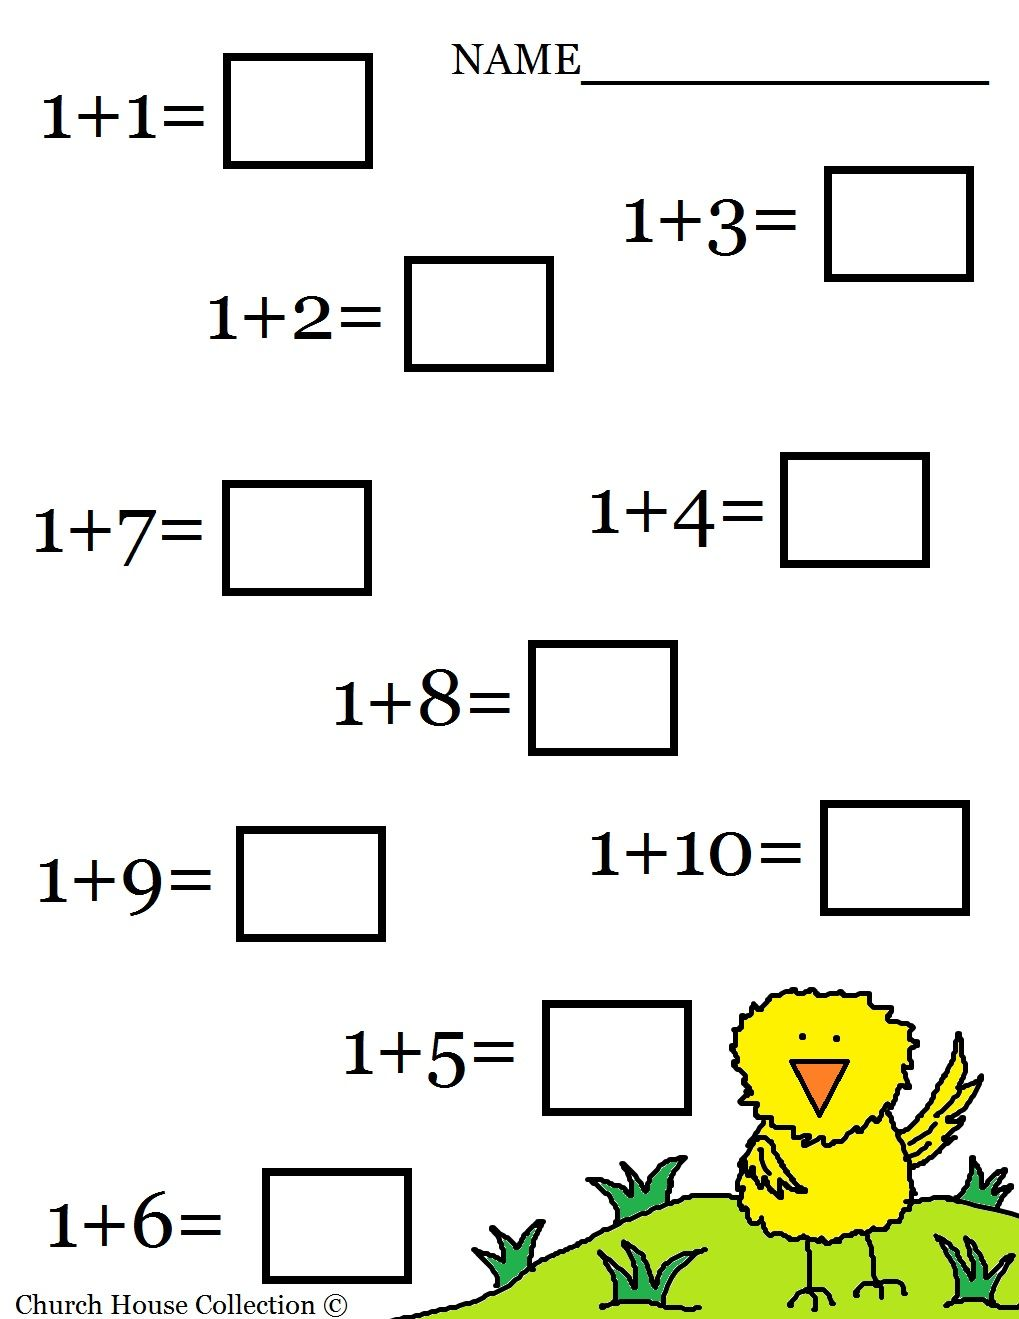 Proatmealus  Nice  Images About Worksheets  Math On Pinterest  Math Sheets  With Marvelous  Images About Worksheets  Math On Pinterest  Math Sheets Math Worksheets For Kindergarten And Simple Addition With Attractive Conversation Worksheet Also Seed To Plant Worksheet In Addition Number Worksheet For Kids And Percents Decimals And Fractions Worksheet As Well As Worksheet On Multiples Additionally Student Worksheets Free Printable From Pinterestcom With Proatmealus  Marvelous  Images About Worksheets  Math On Pinterest  Math Sheets  With Attractive  Images About Worksheets  Math On Pinterest  Math Sheets Math Worksheets For Kindergarten And Simple Addition And Nice Conversation Worksheet Also Seed To Plant Worksheet In Addition Number Worksheet For Kids From Pinterestcom